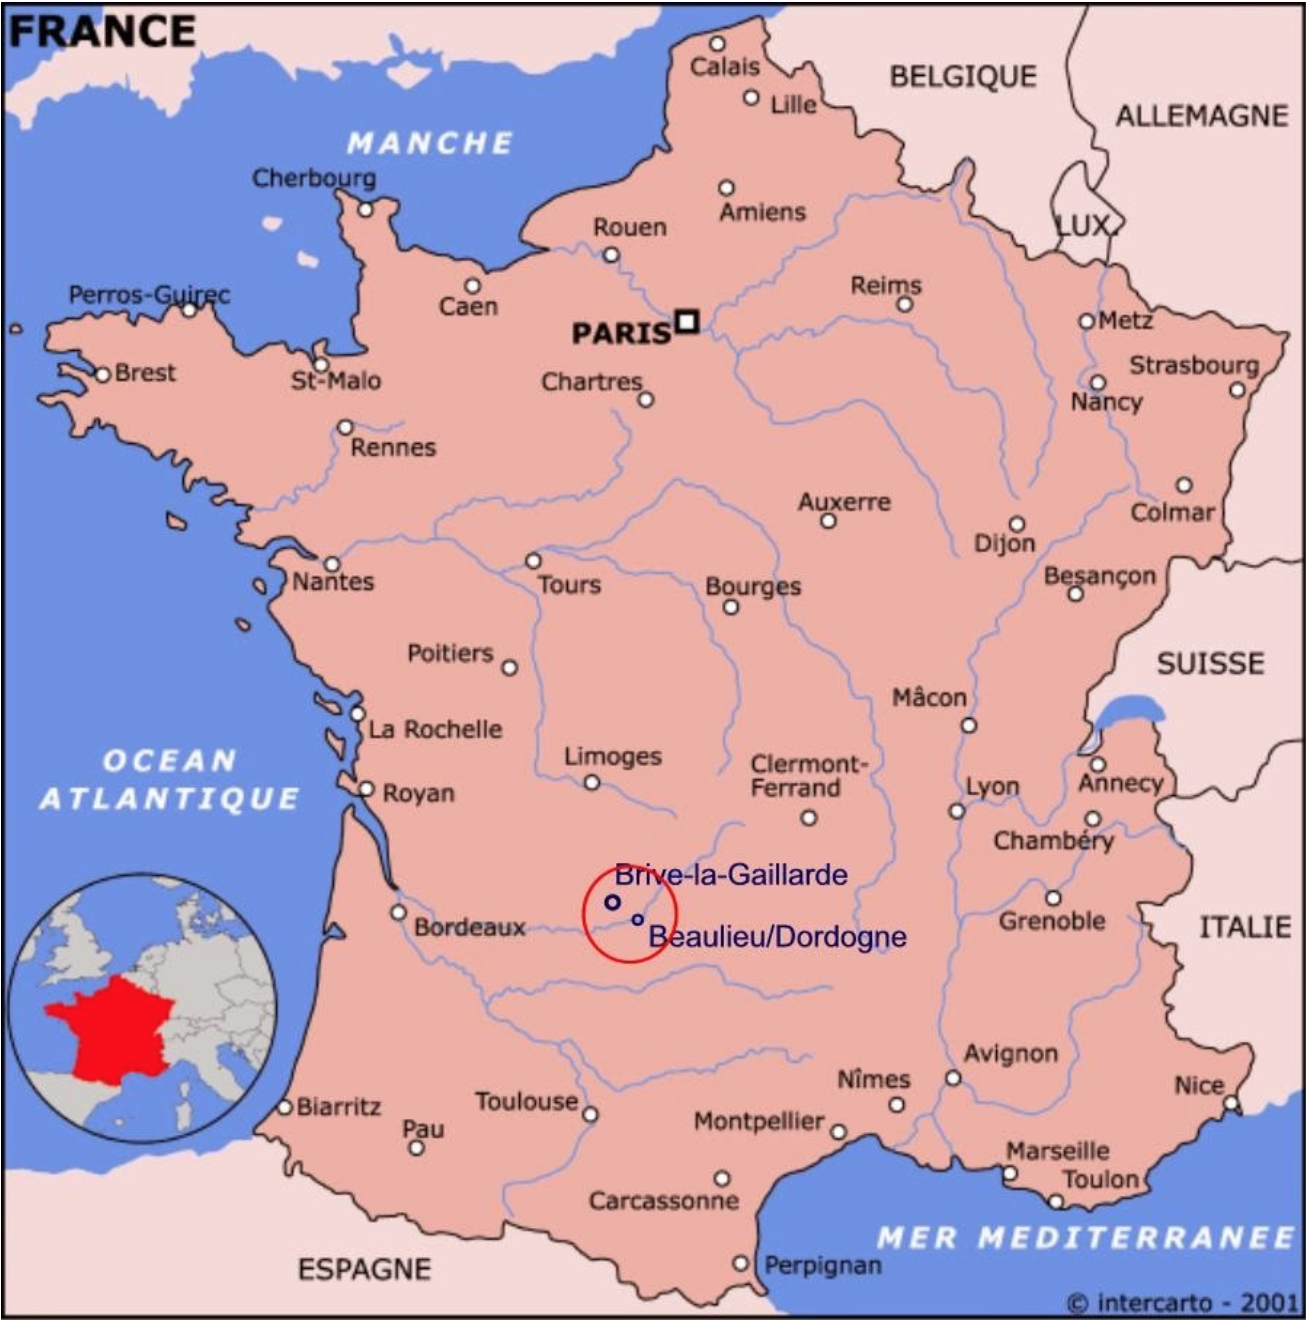 Map of France highlighting the location of Brive-la-Gaillarde and Beaulieu.